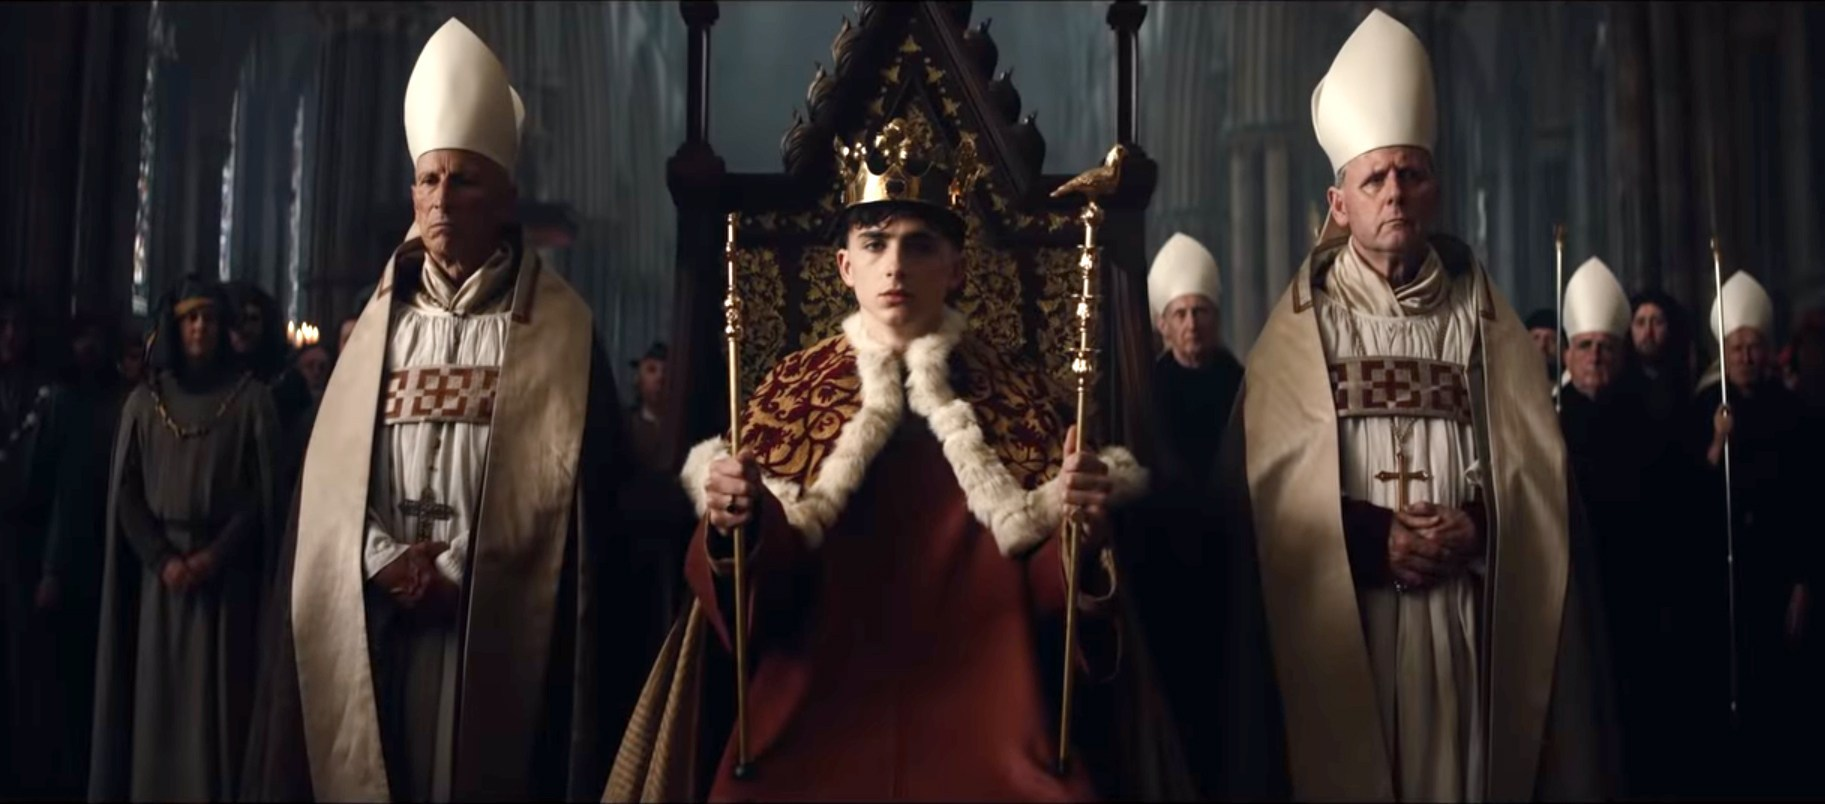 Timothee Chalamet as King Henry V, sits on a throne in robes and holding a scepter.